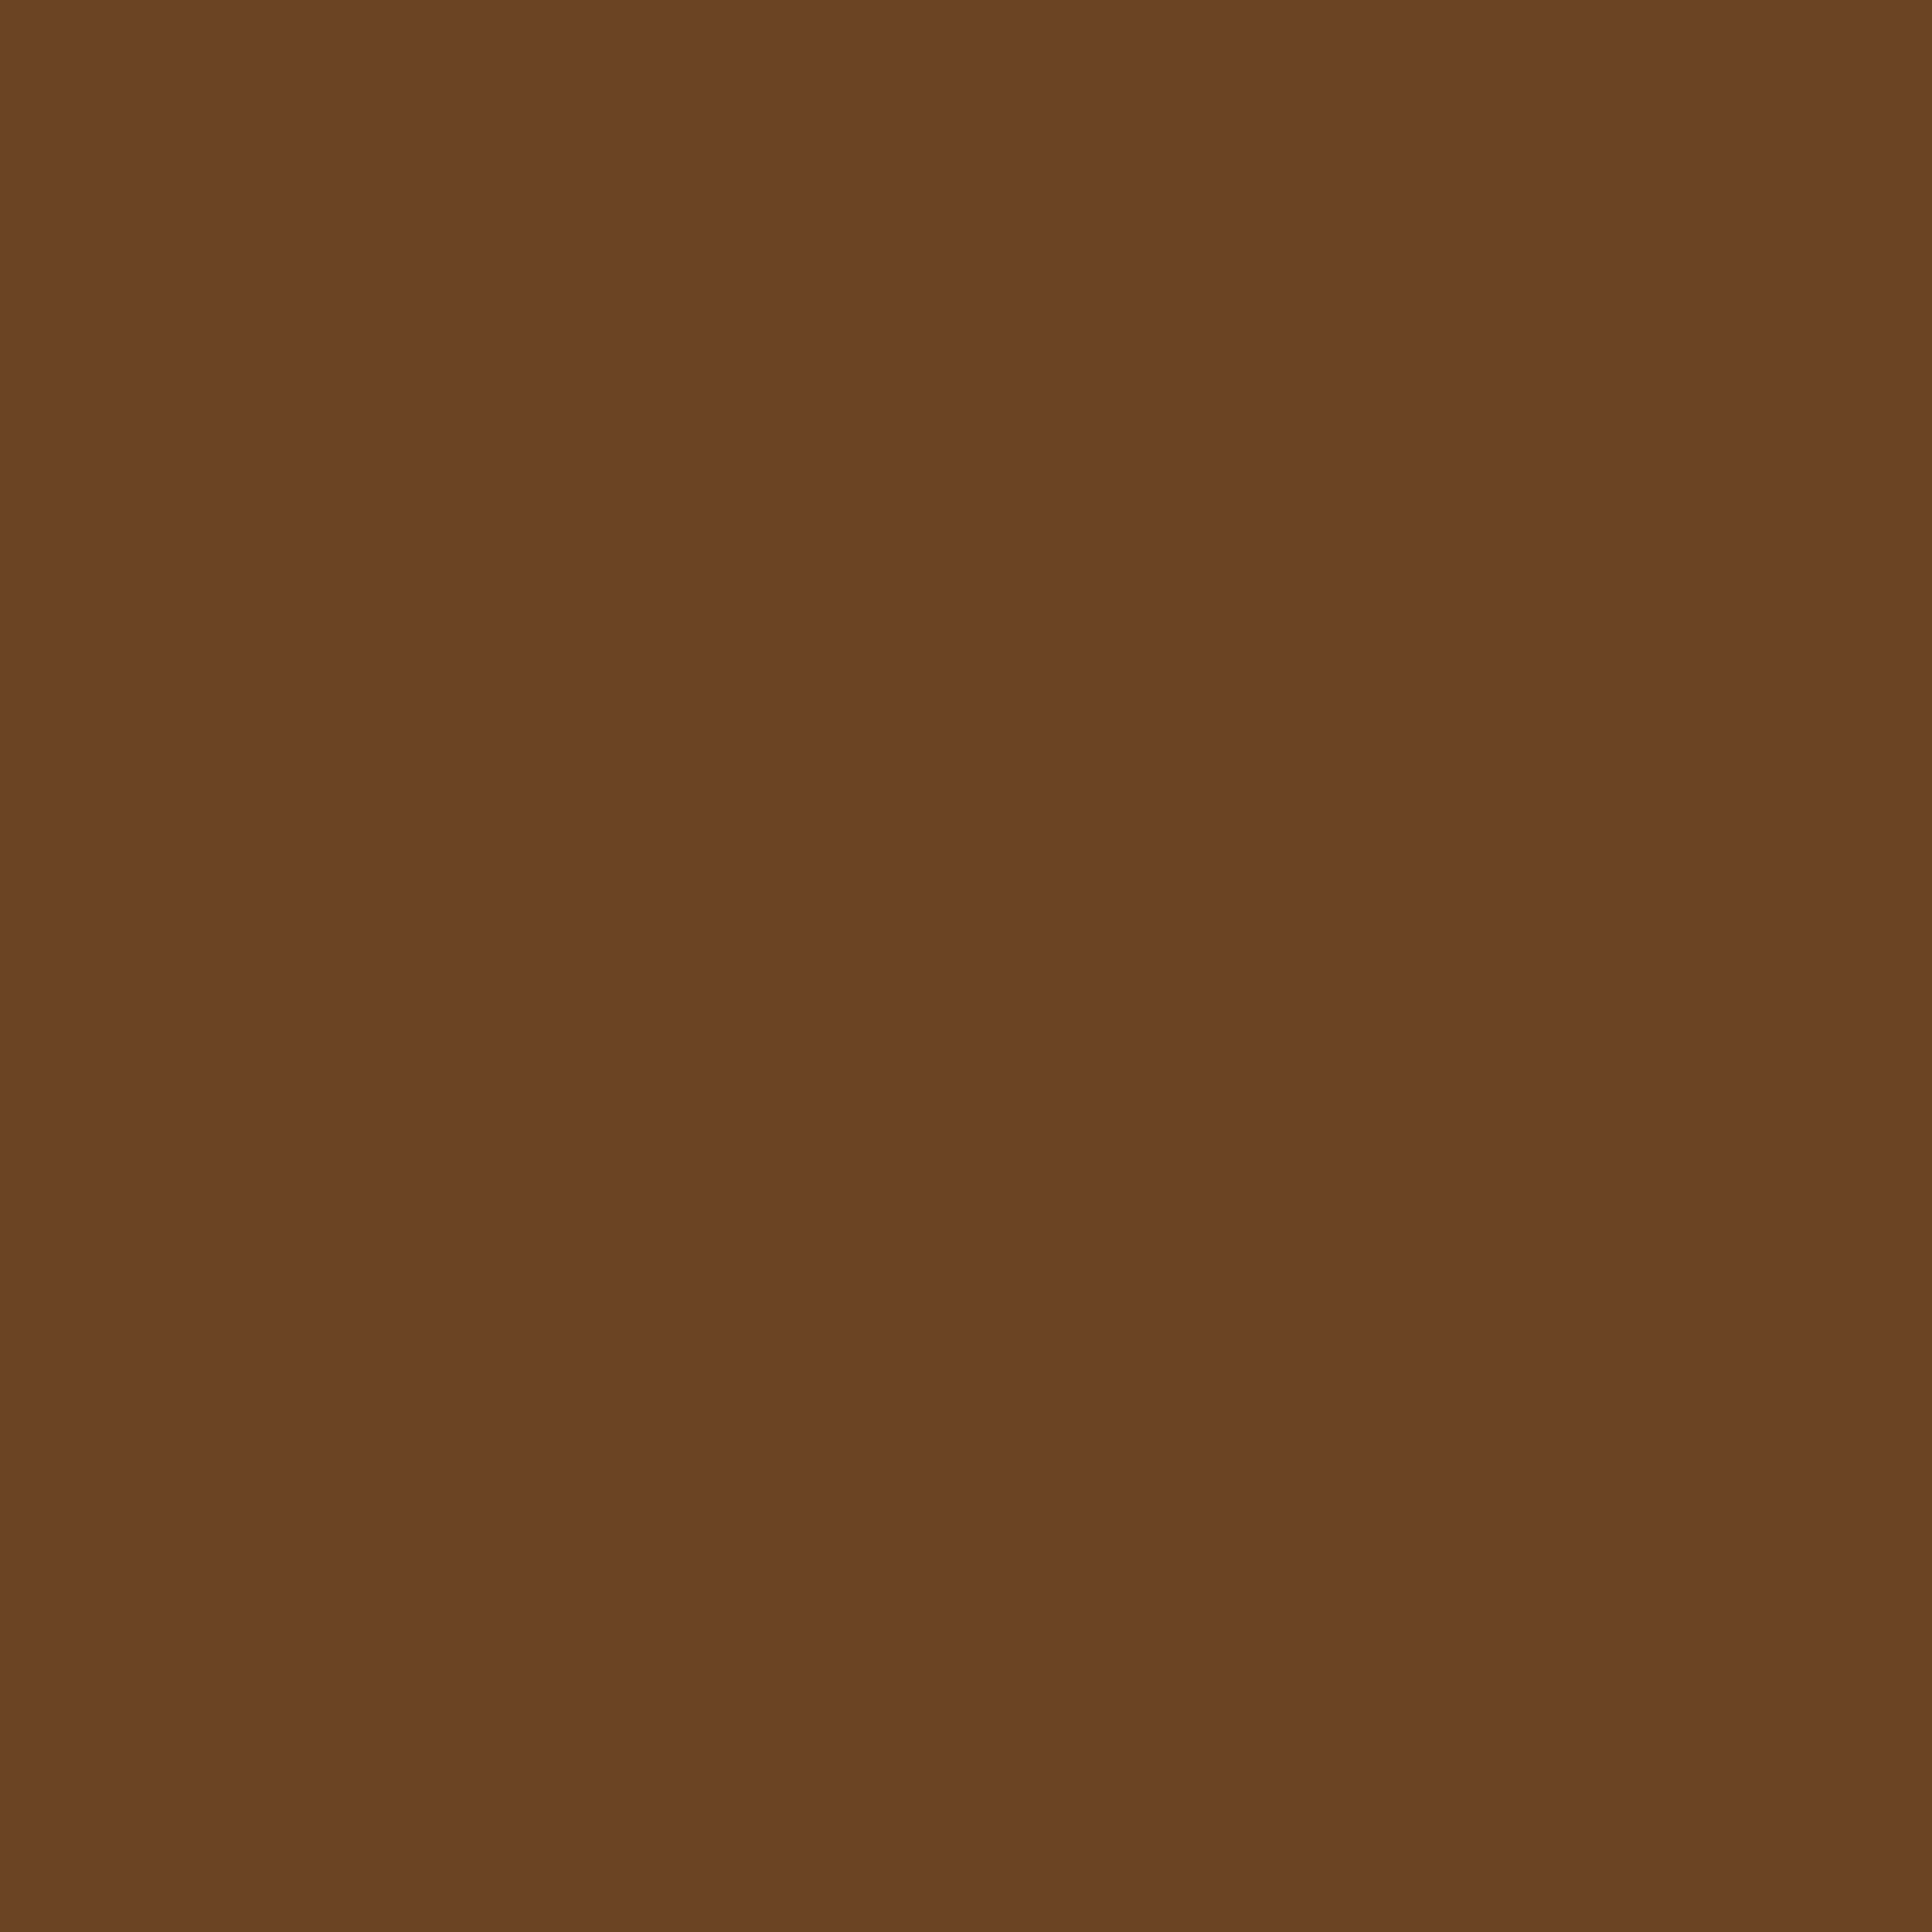 2732x2732 Flattery Solid Color Background